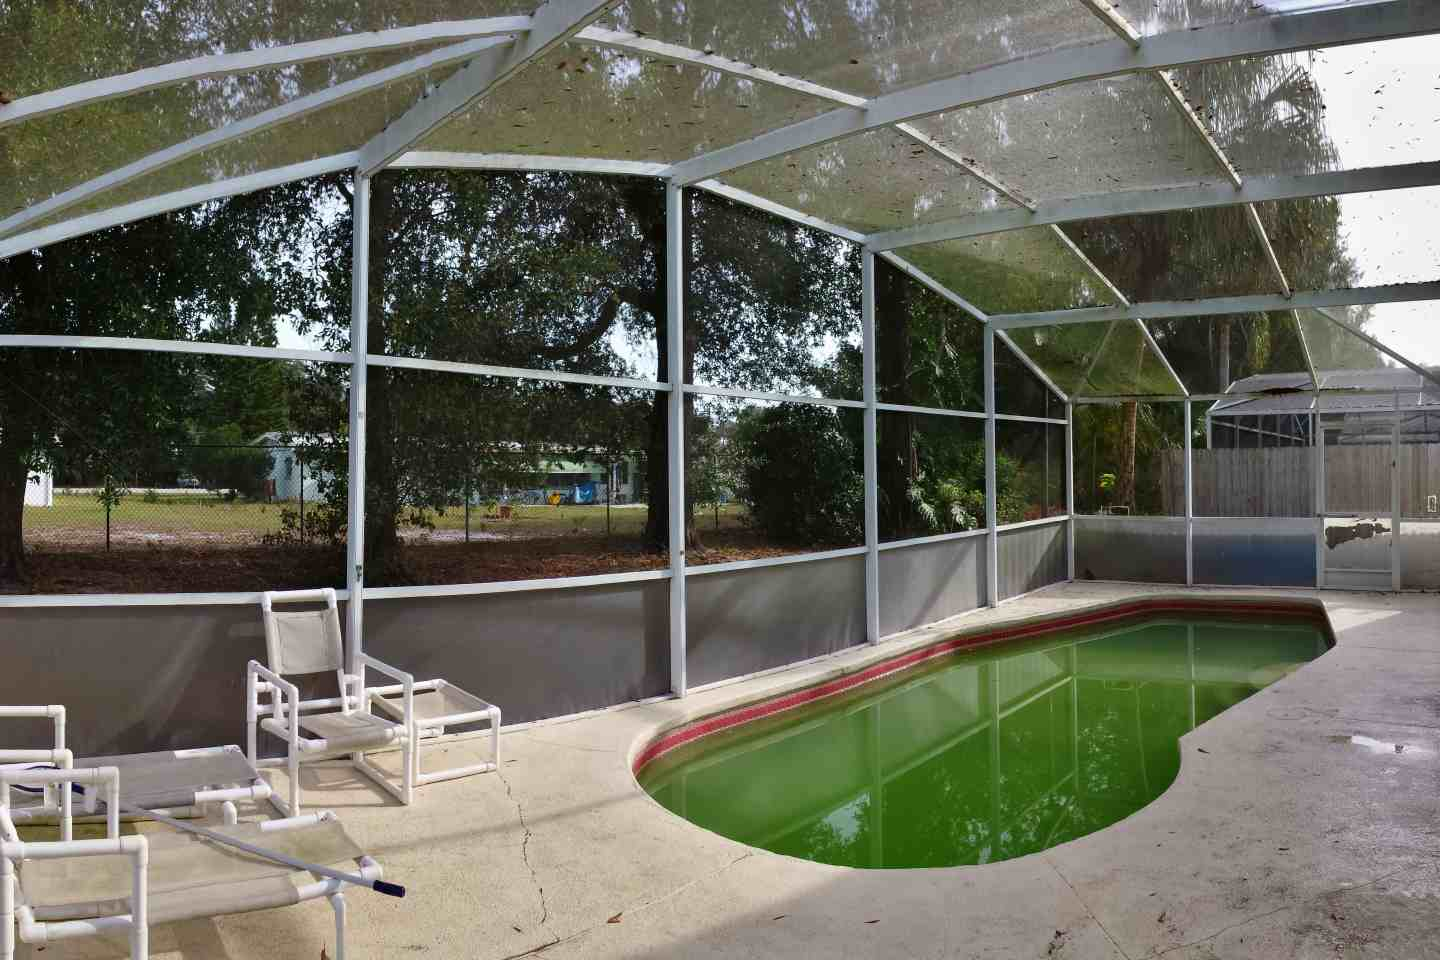 03-pool-enclosure-florida-glass-before-re-screen.jpg